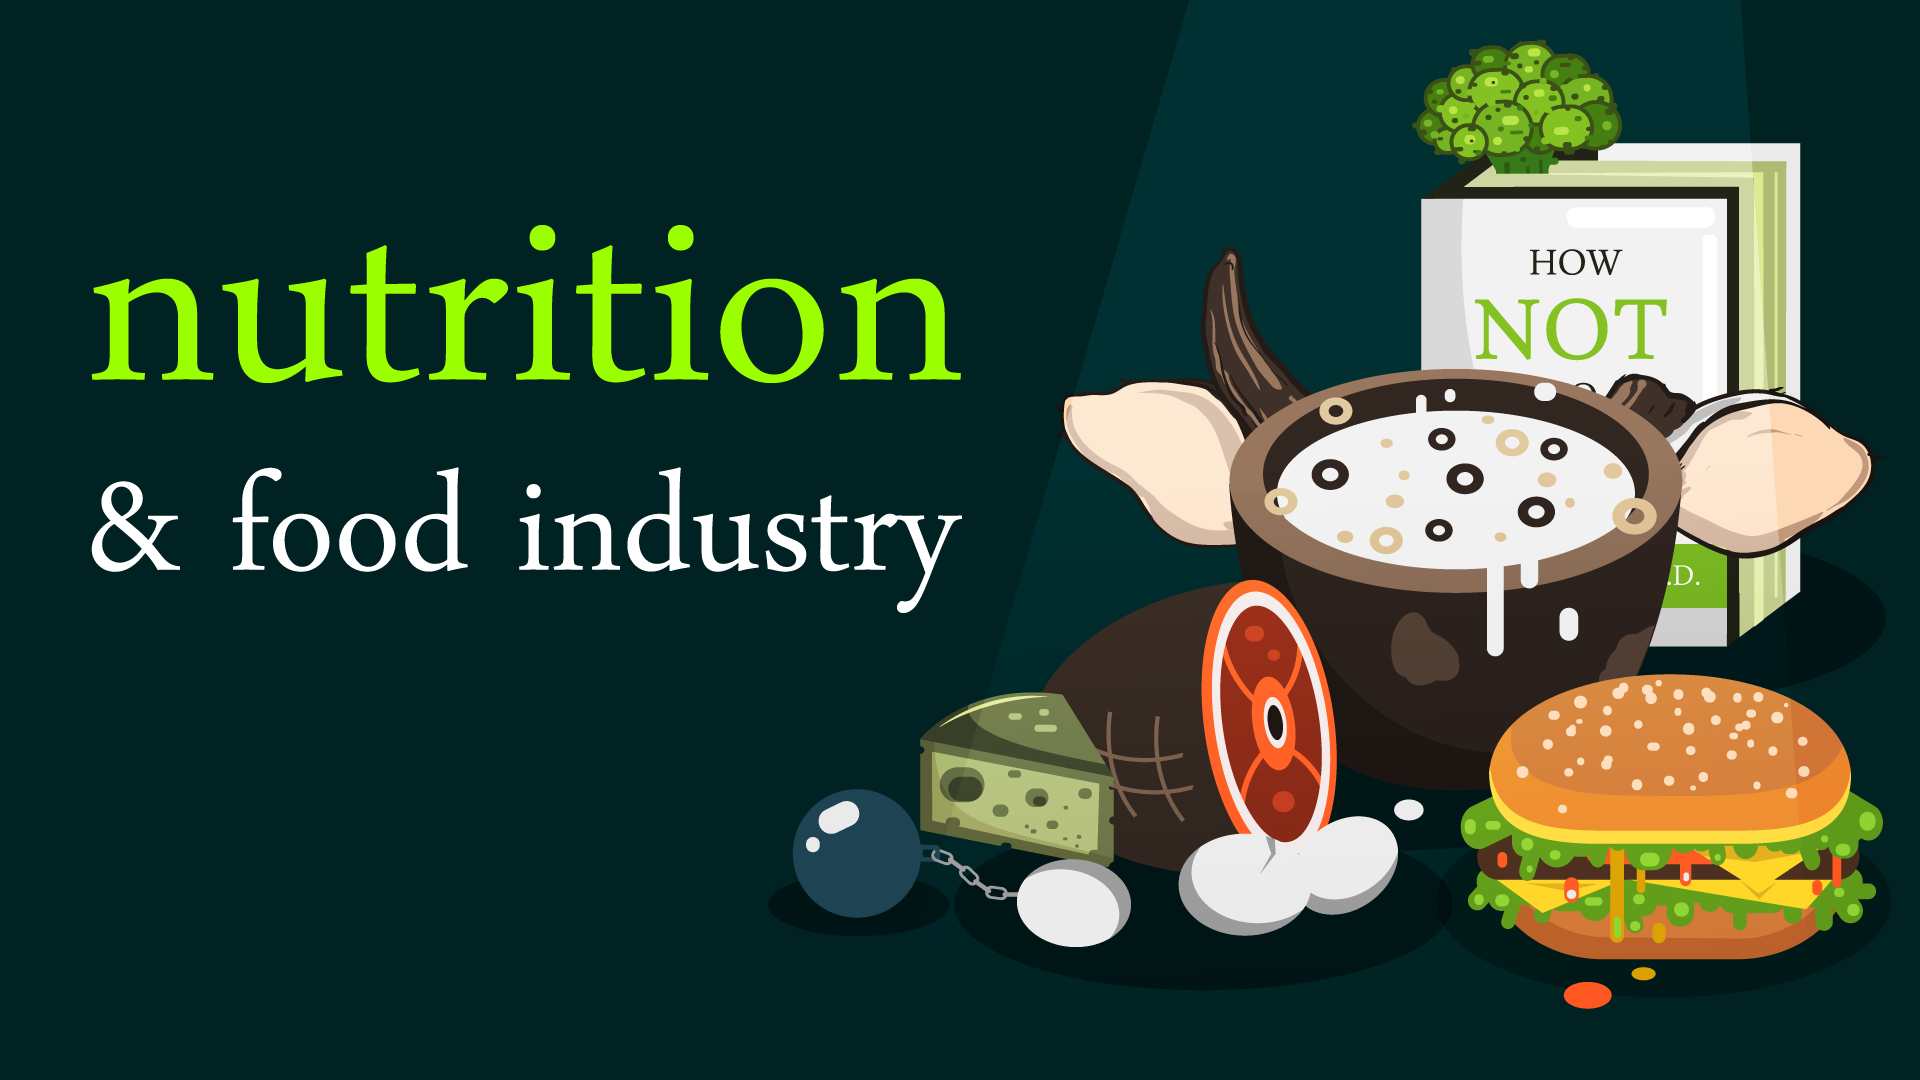 utrition & food industry